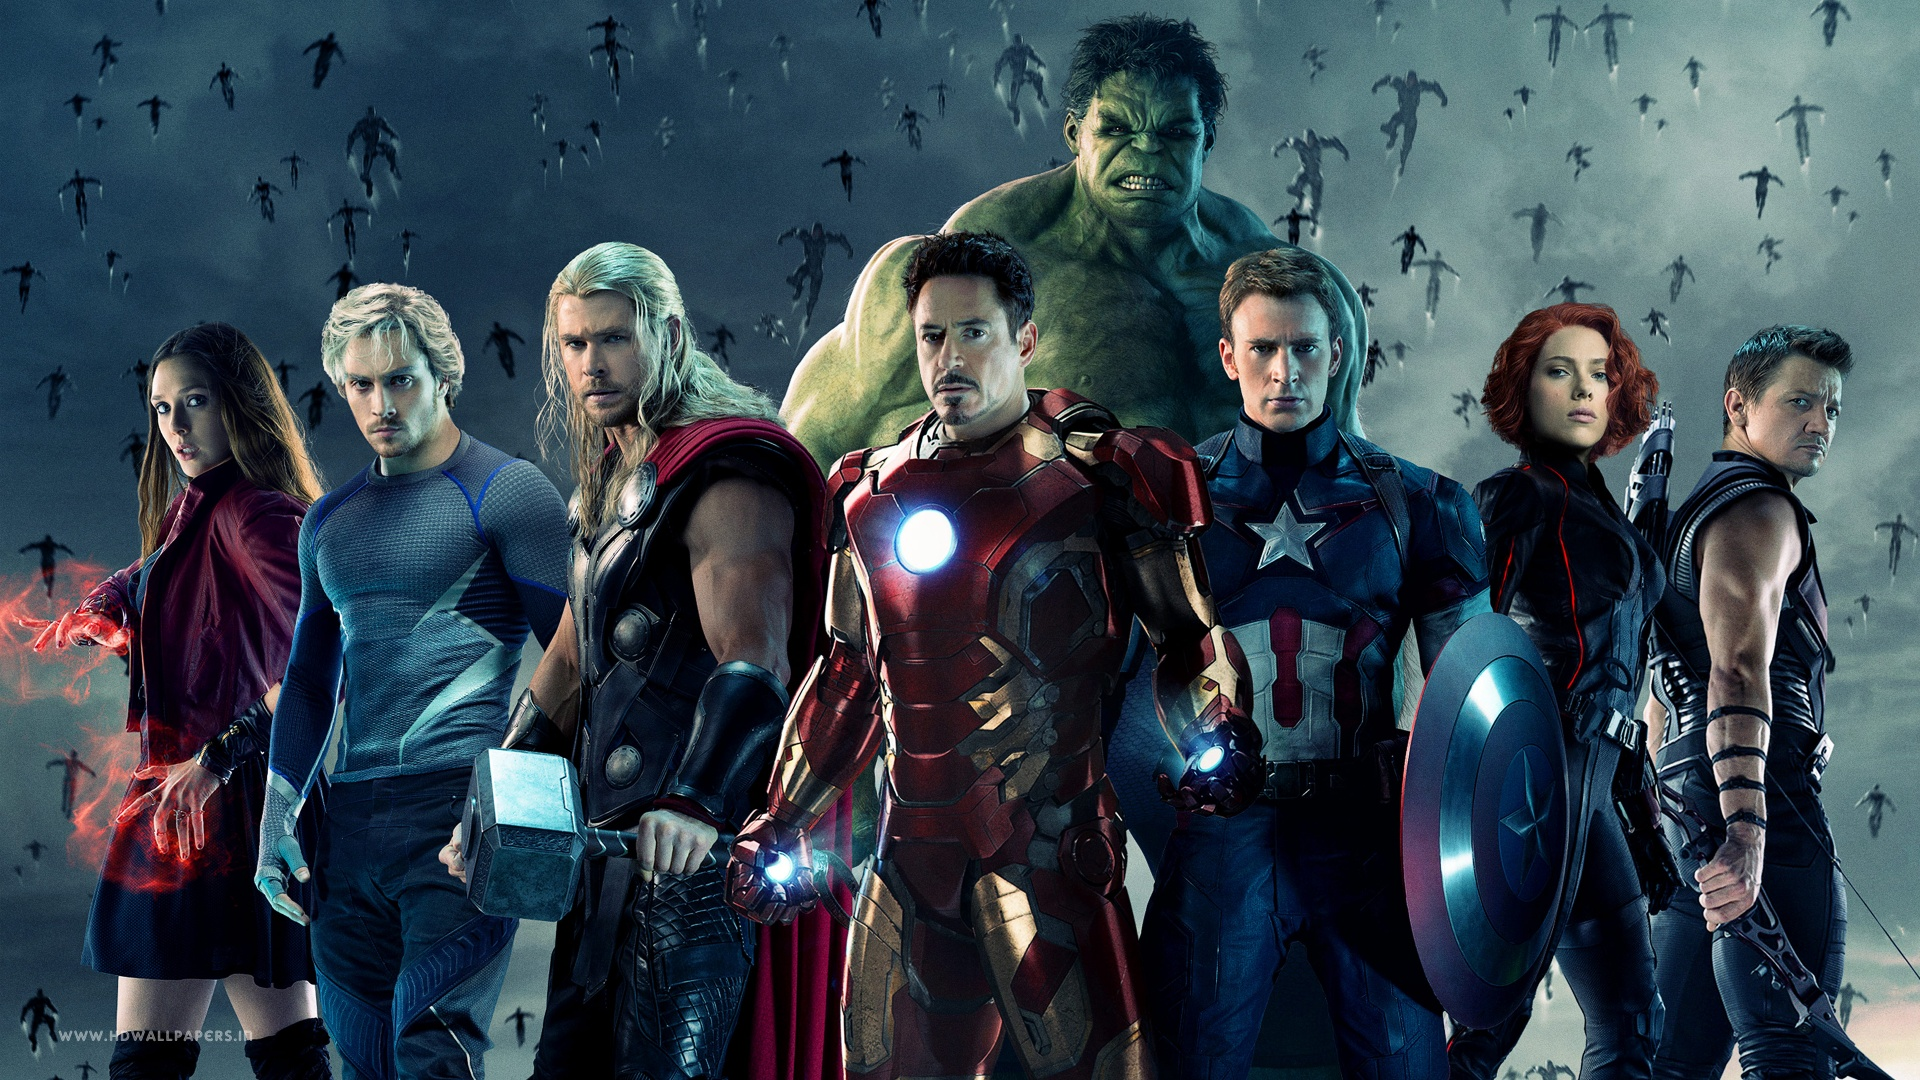 avenger hd wallpaper wallpapersafari